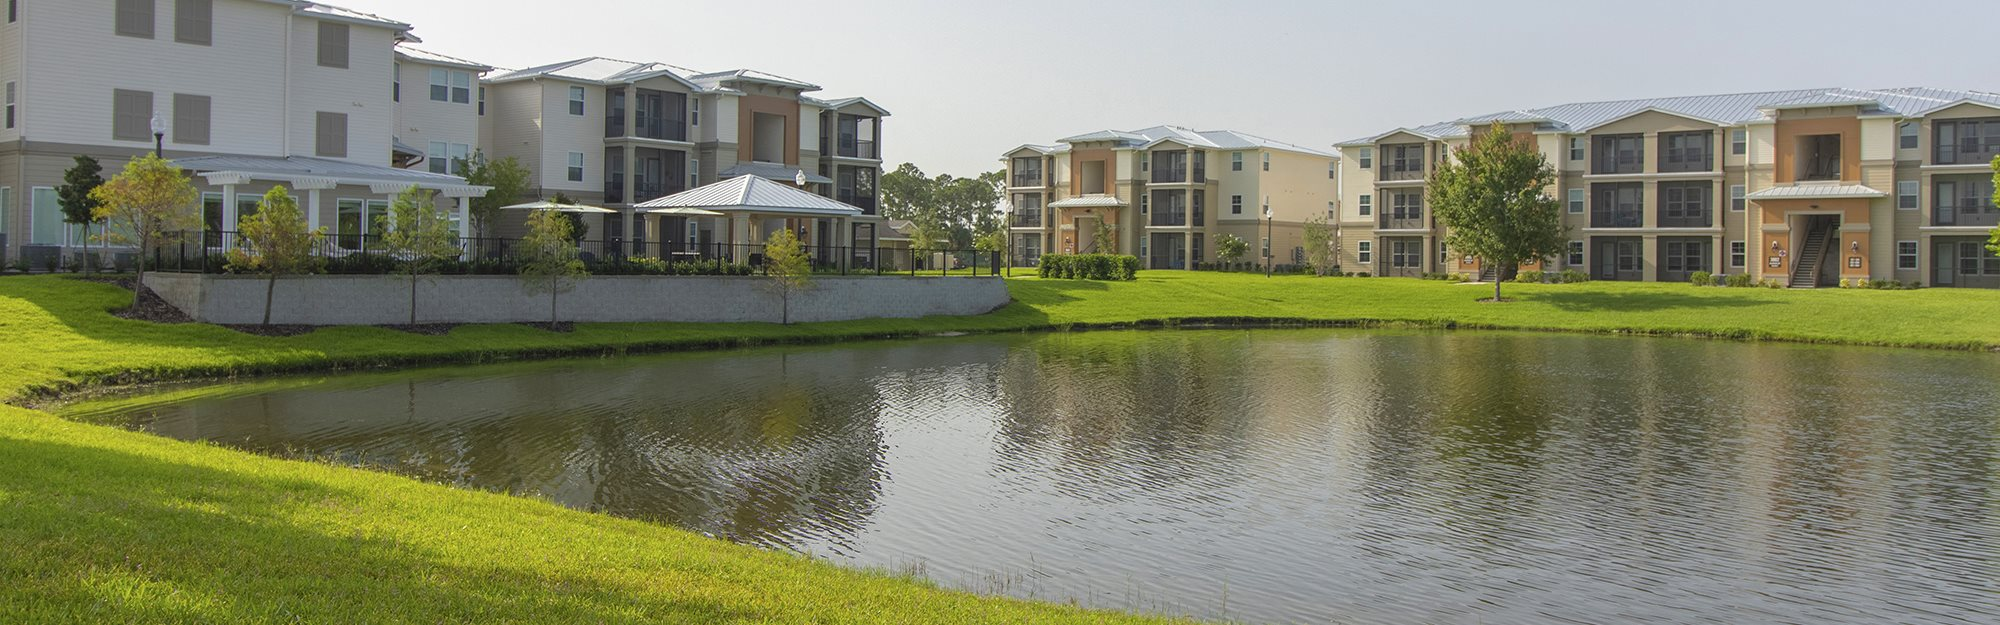 Ventura at Turtle Creek Apartments for rent in Rockledge, FL. Make this community your new home or visit other ConcordRENTS communities at ConcordRENTS.com. Lake view